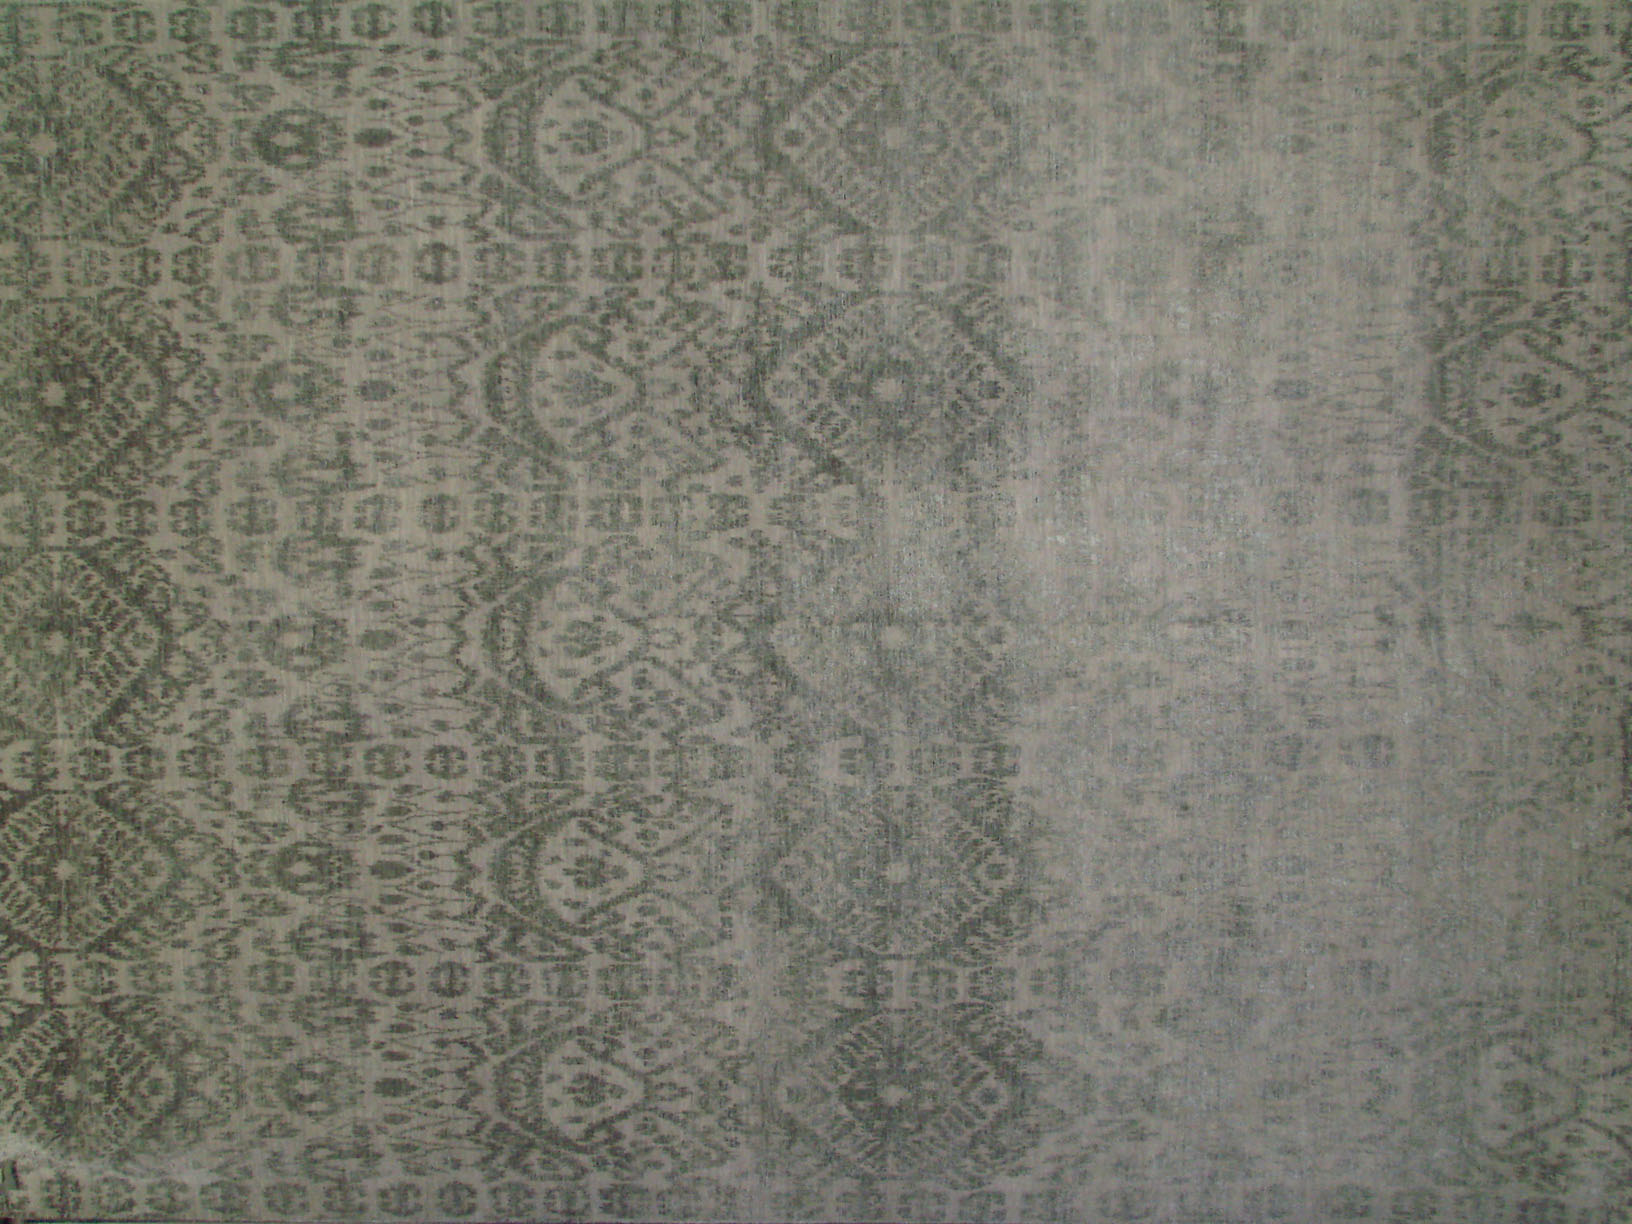 9x12 Contemporary Hand Knotted Wool Area Rug - MR021558